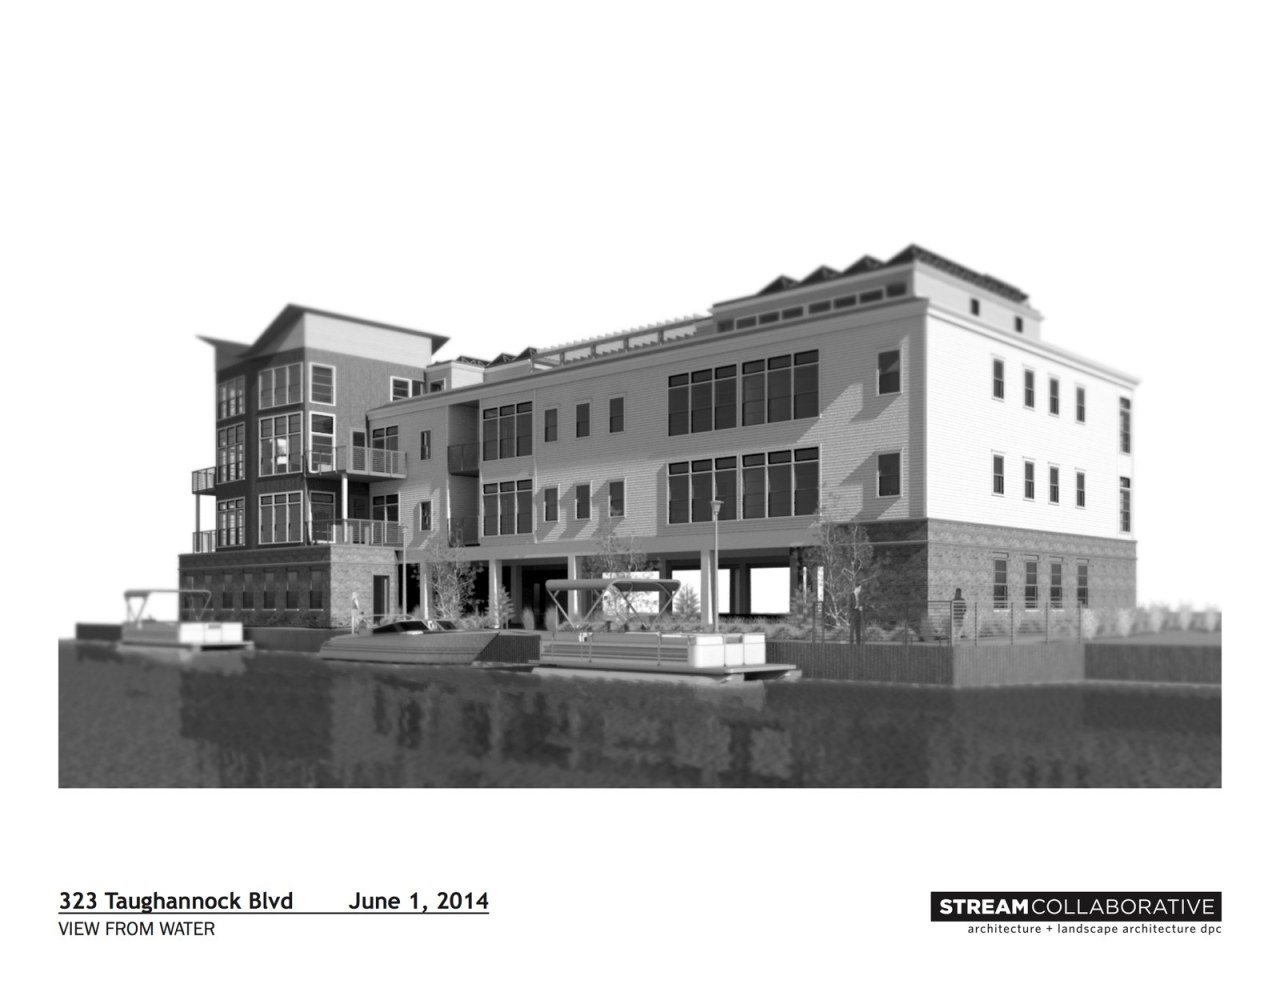 323 Taughannock Boulevard - SPR Application Submission - 06-02-14-2